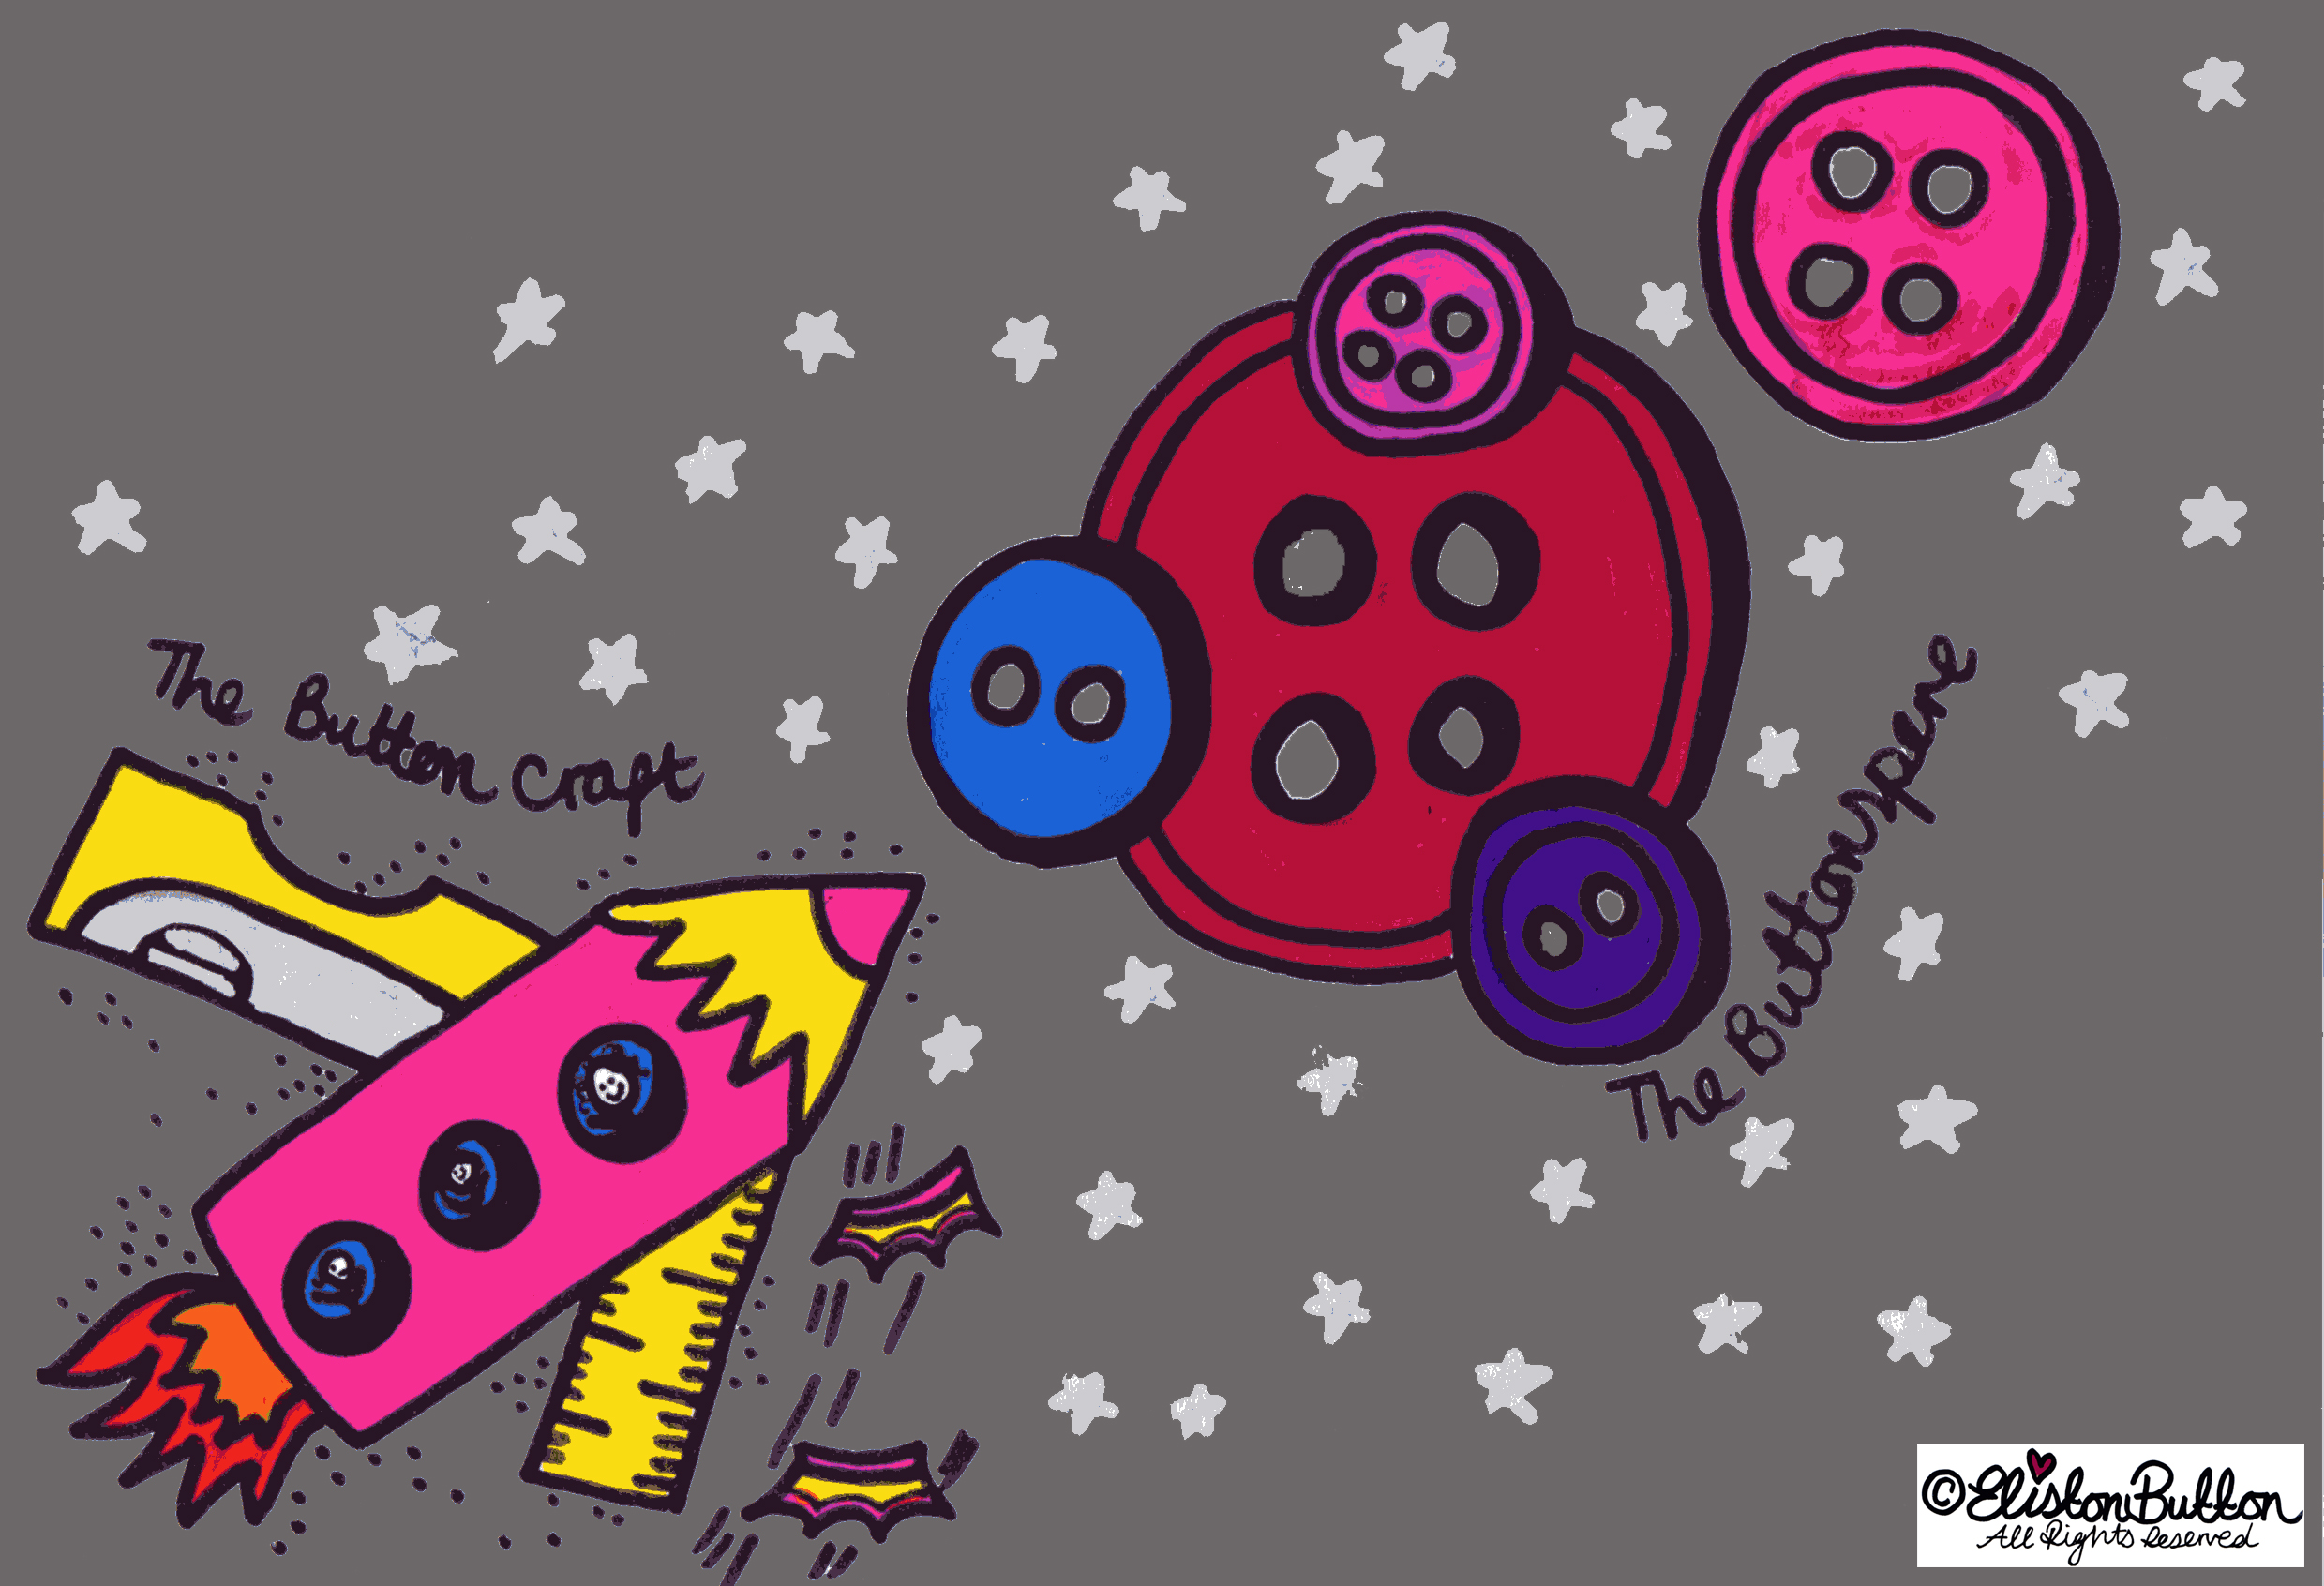 The Buttonsphere Crafty Illustration - Hello! Good Day! Bonjour! Aloha! at www.elistonbutton.com - Eliston Button - That Crafty Kid – Art, Design, Craft & Adventure.